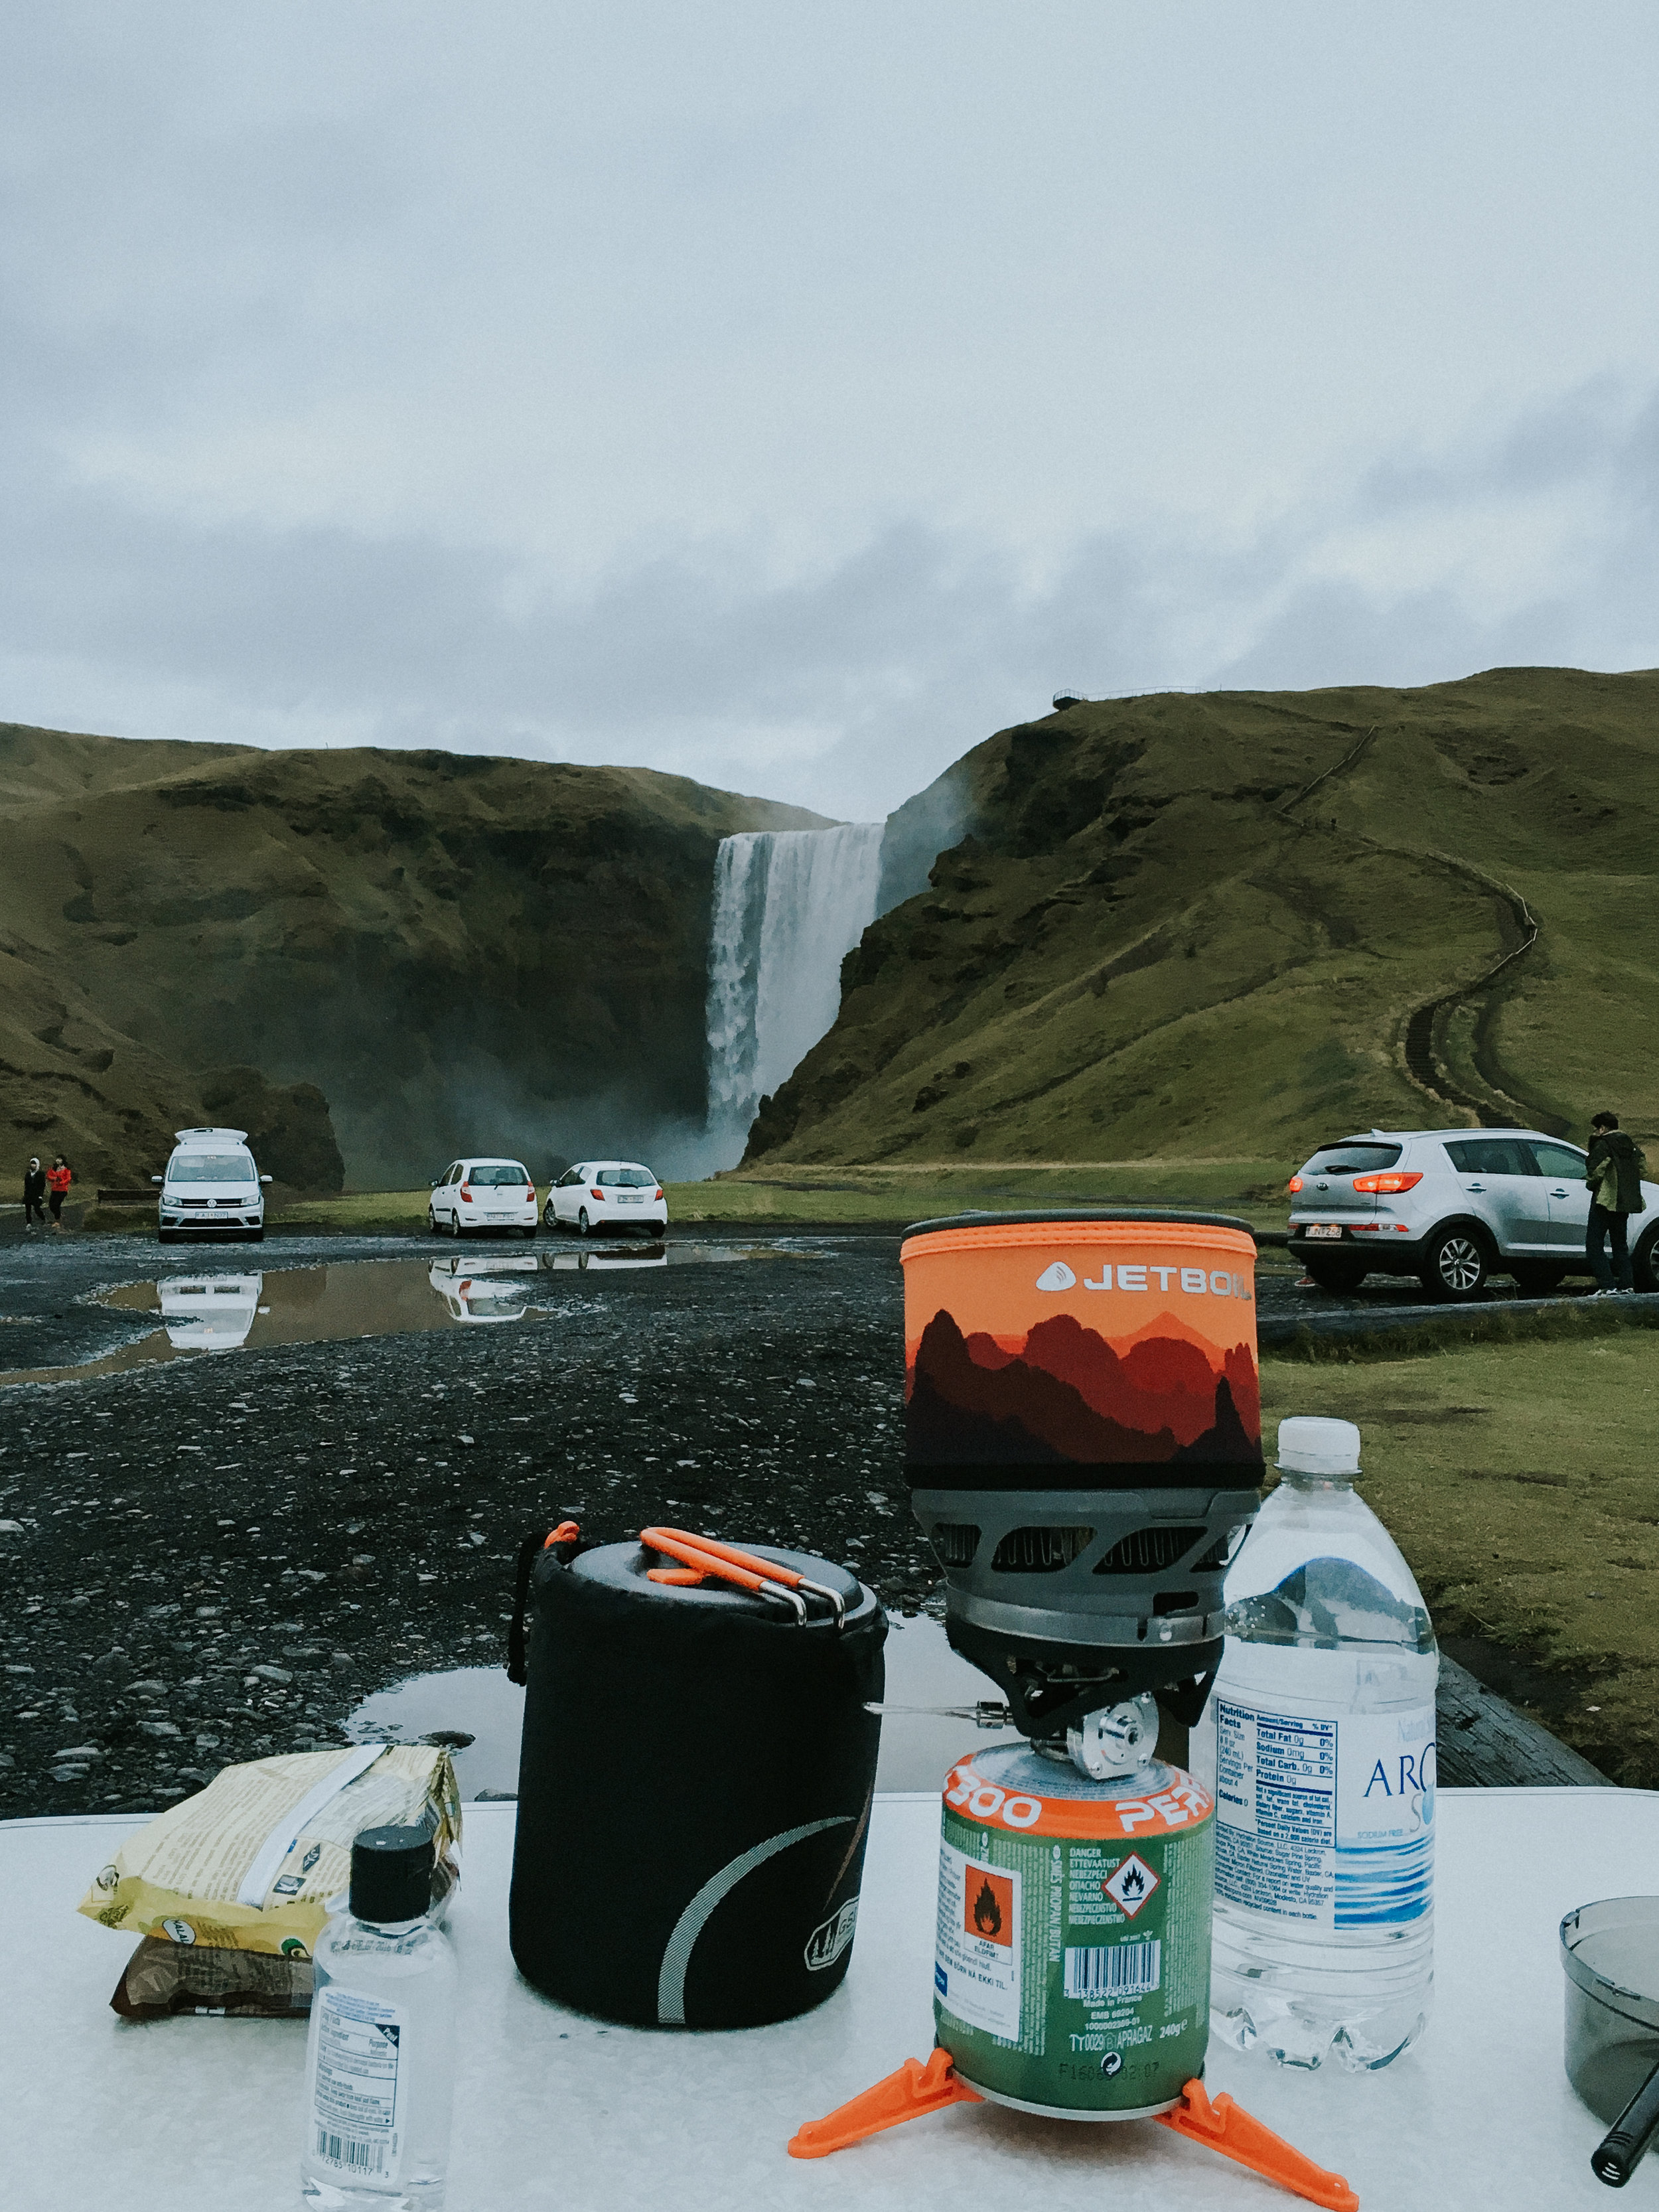 Setting up to make dinner at the Skogar Campsite. Perfect view, if I may say so myself!